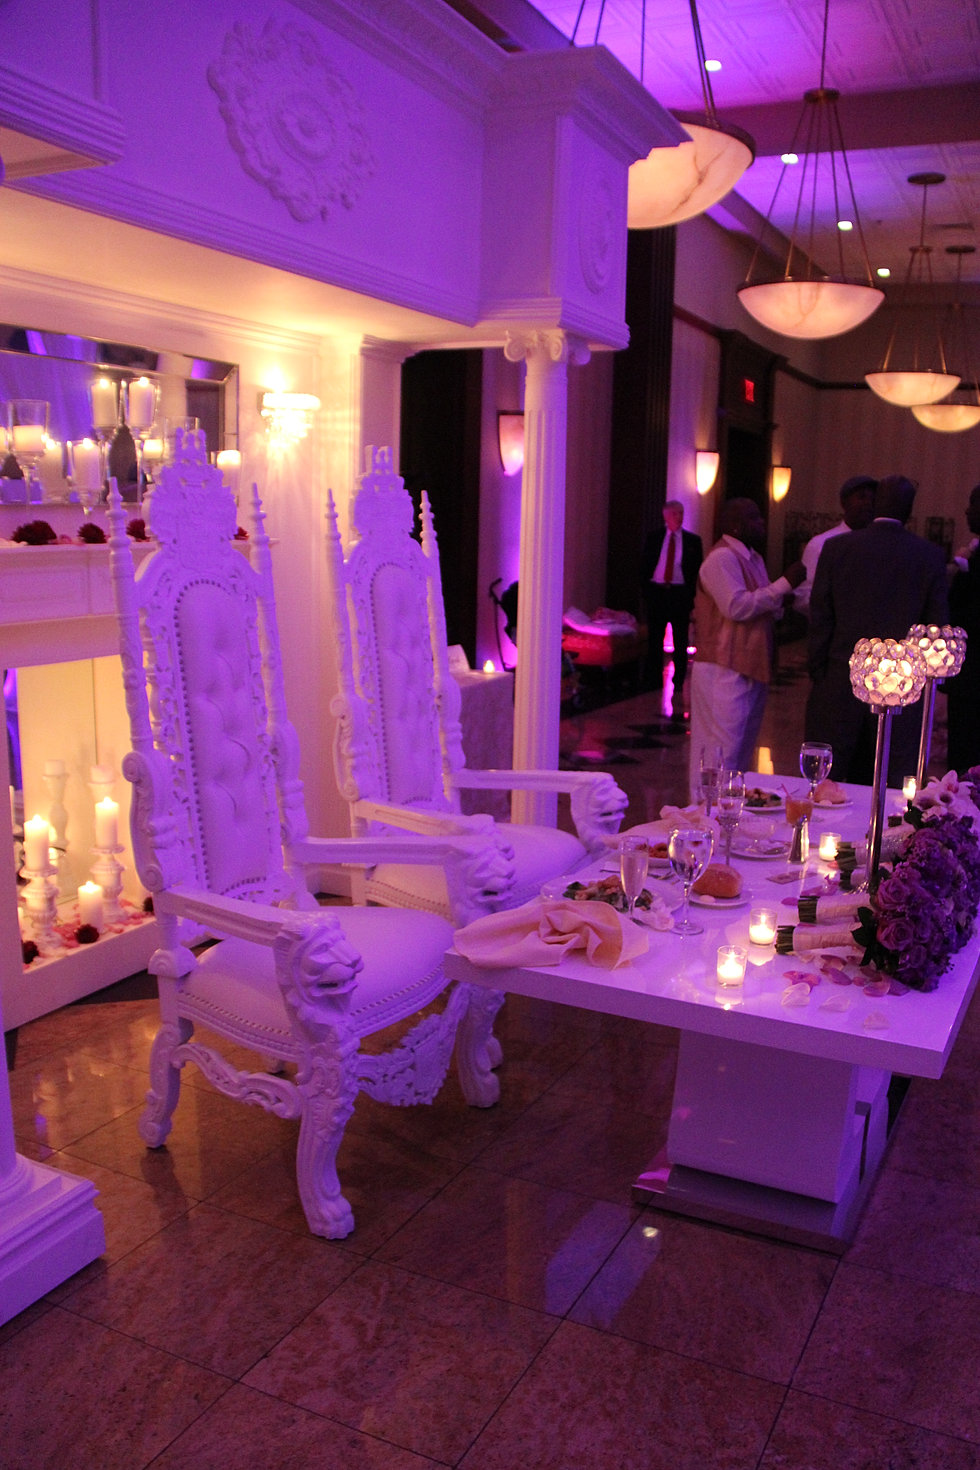 Bride Groom Table Decoration Bride And Groom Sweetheart Table King And Queen Chairs